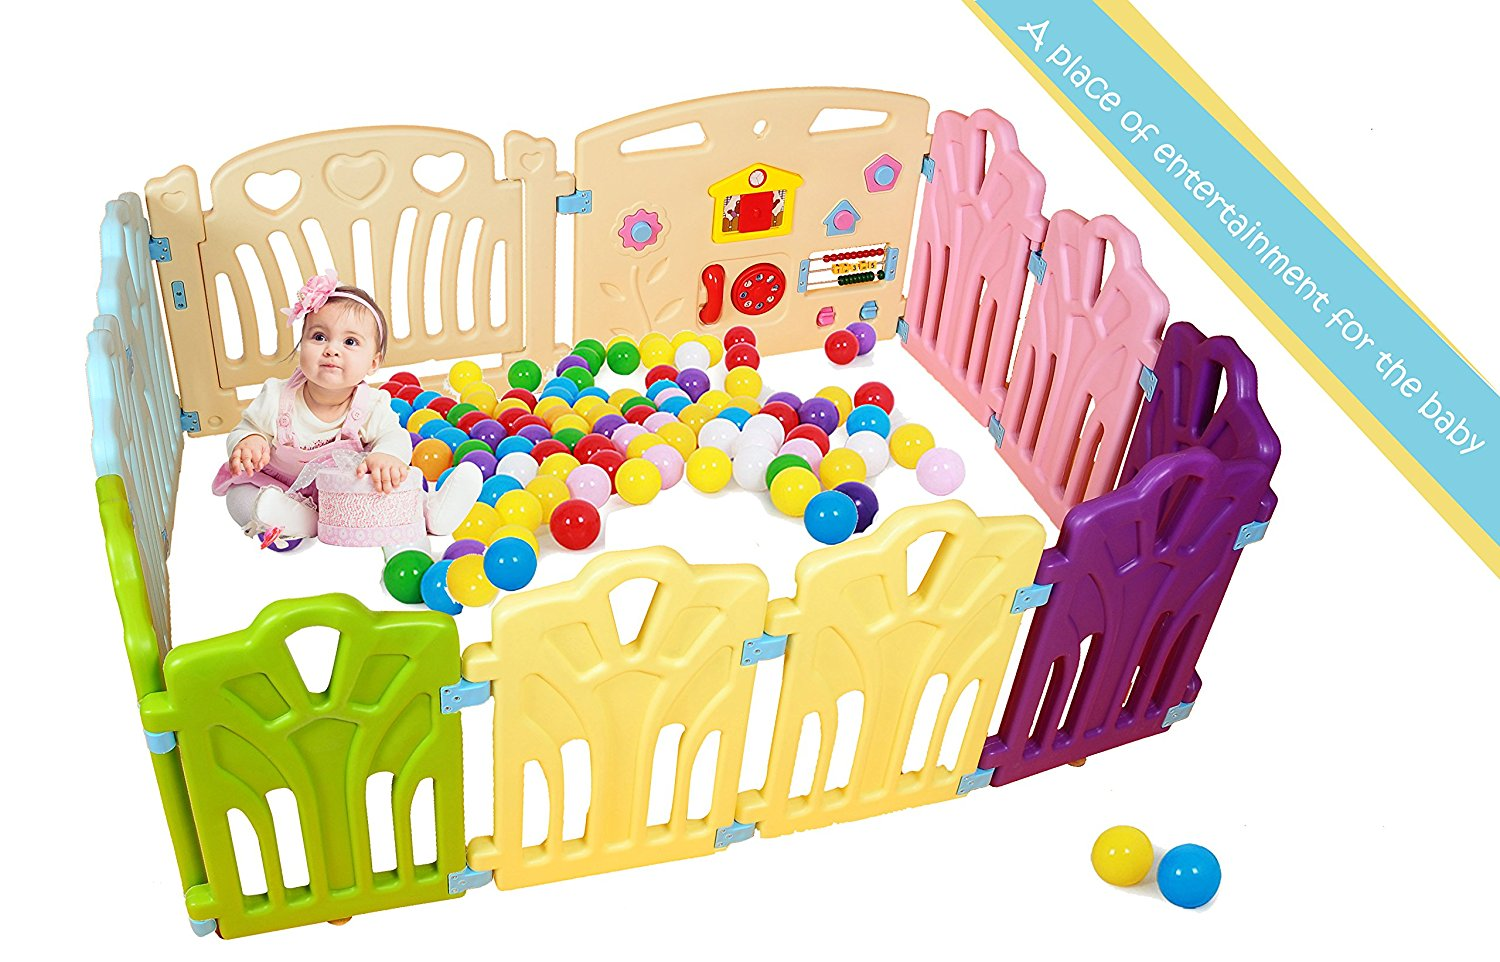 Baby Playpen Kids Activity Centre Safety Play Pen Home Indoor Outdoor New Pen (multicolour, Classic set 12... by PENSON %26 CO.